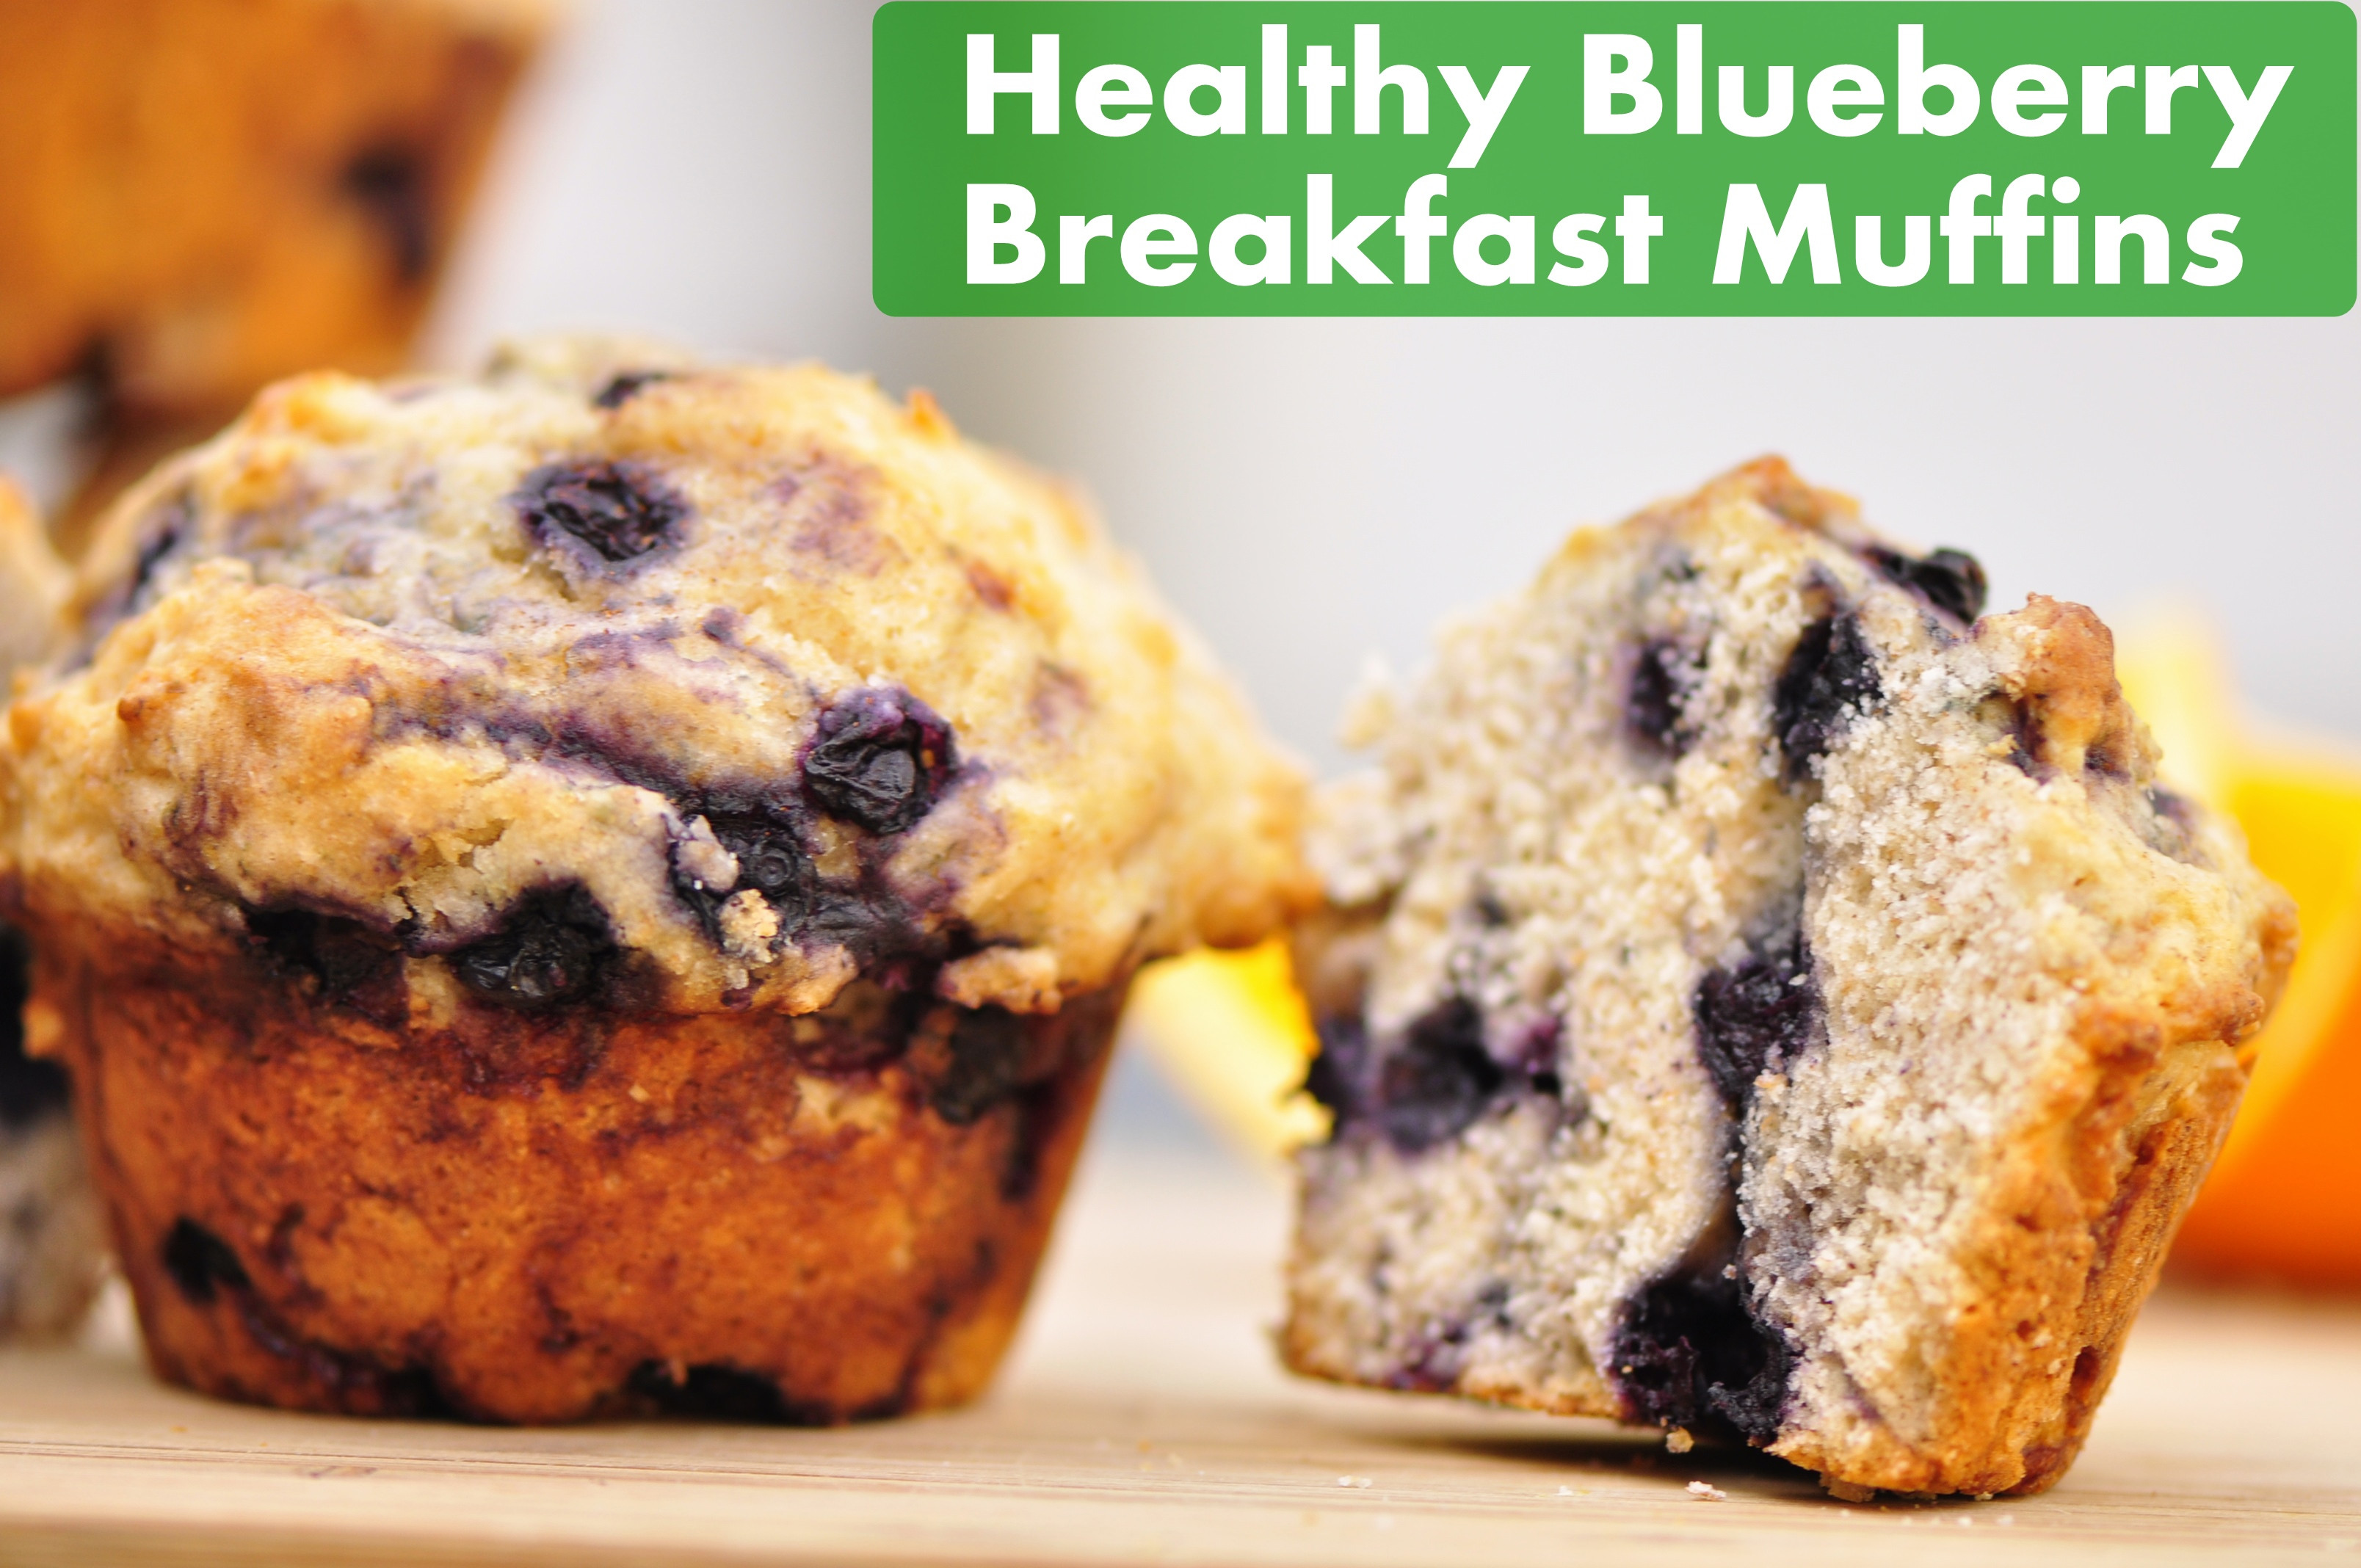 Healthy Breakfast Muffins Recipe  Healthy Blueberry Breakfast Muffins – the ve arian ginger